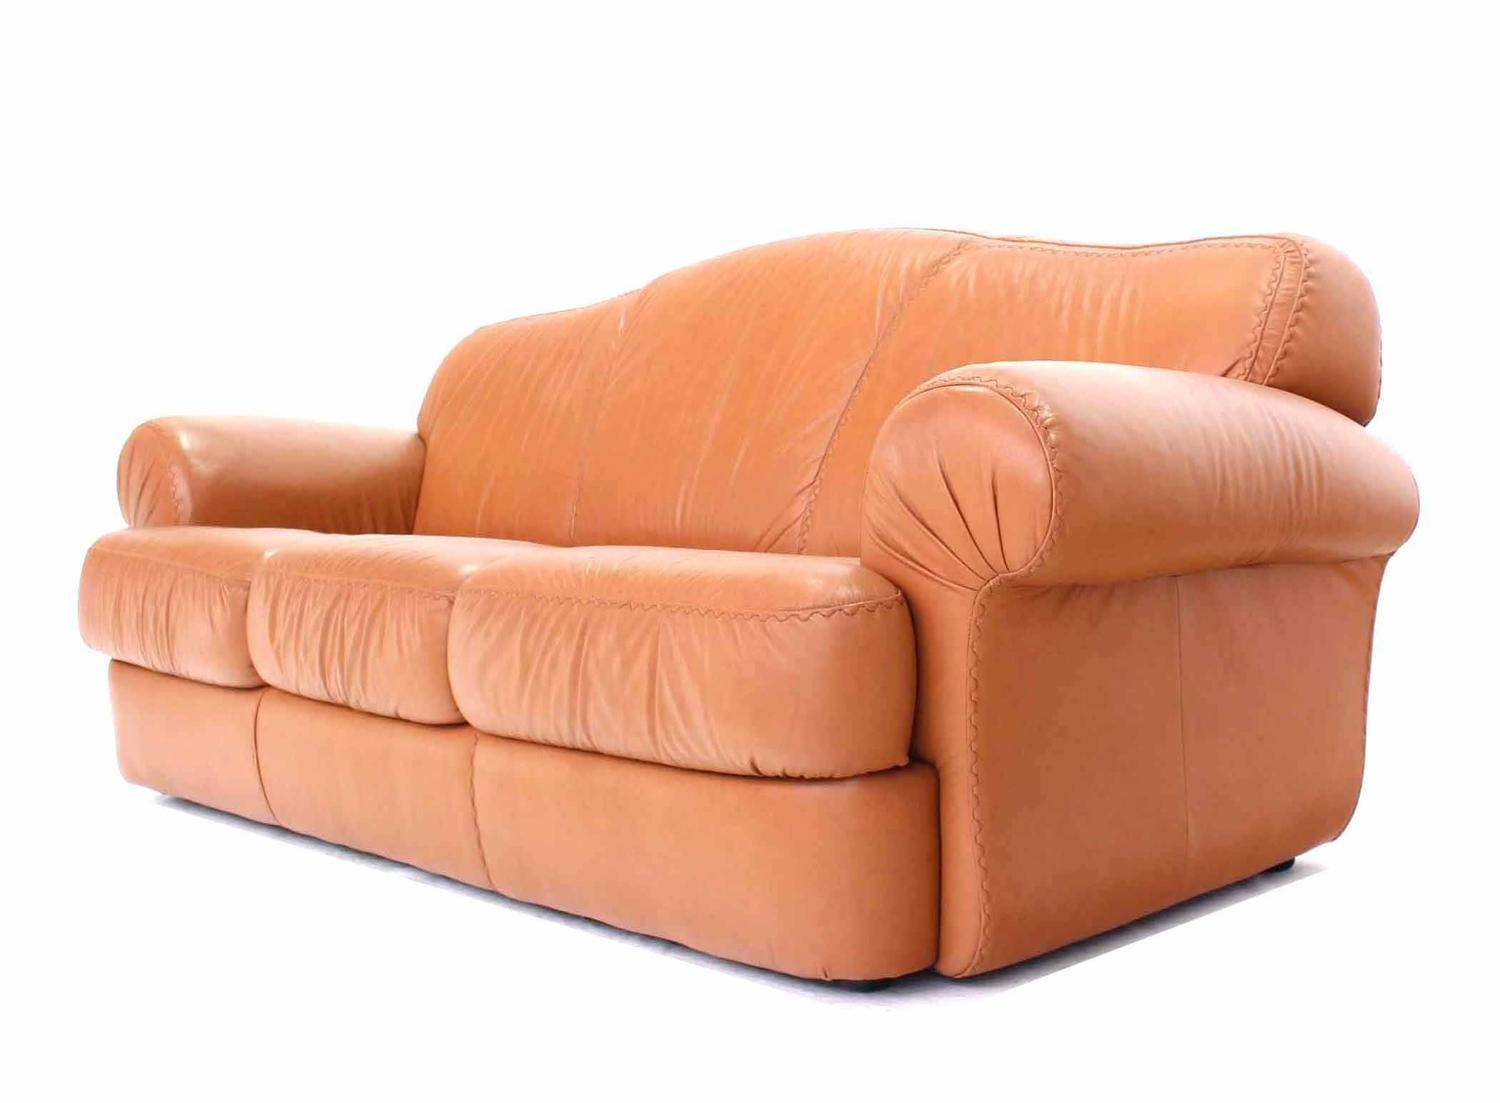 baseball leather sofa vinyl covered sofas pair of tan decorative style stitching